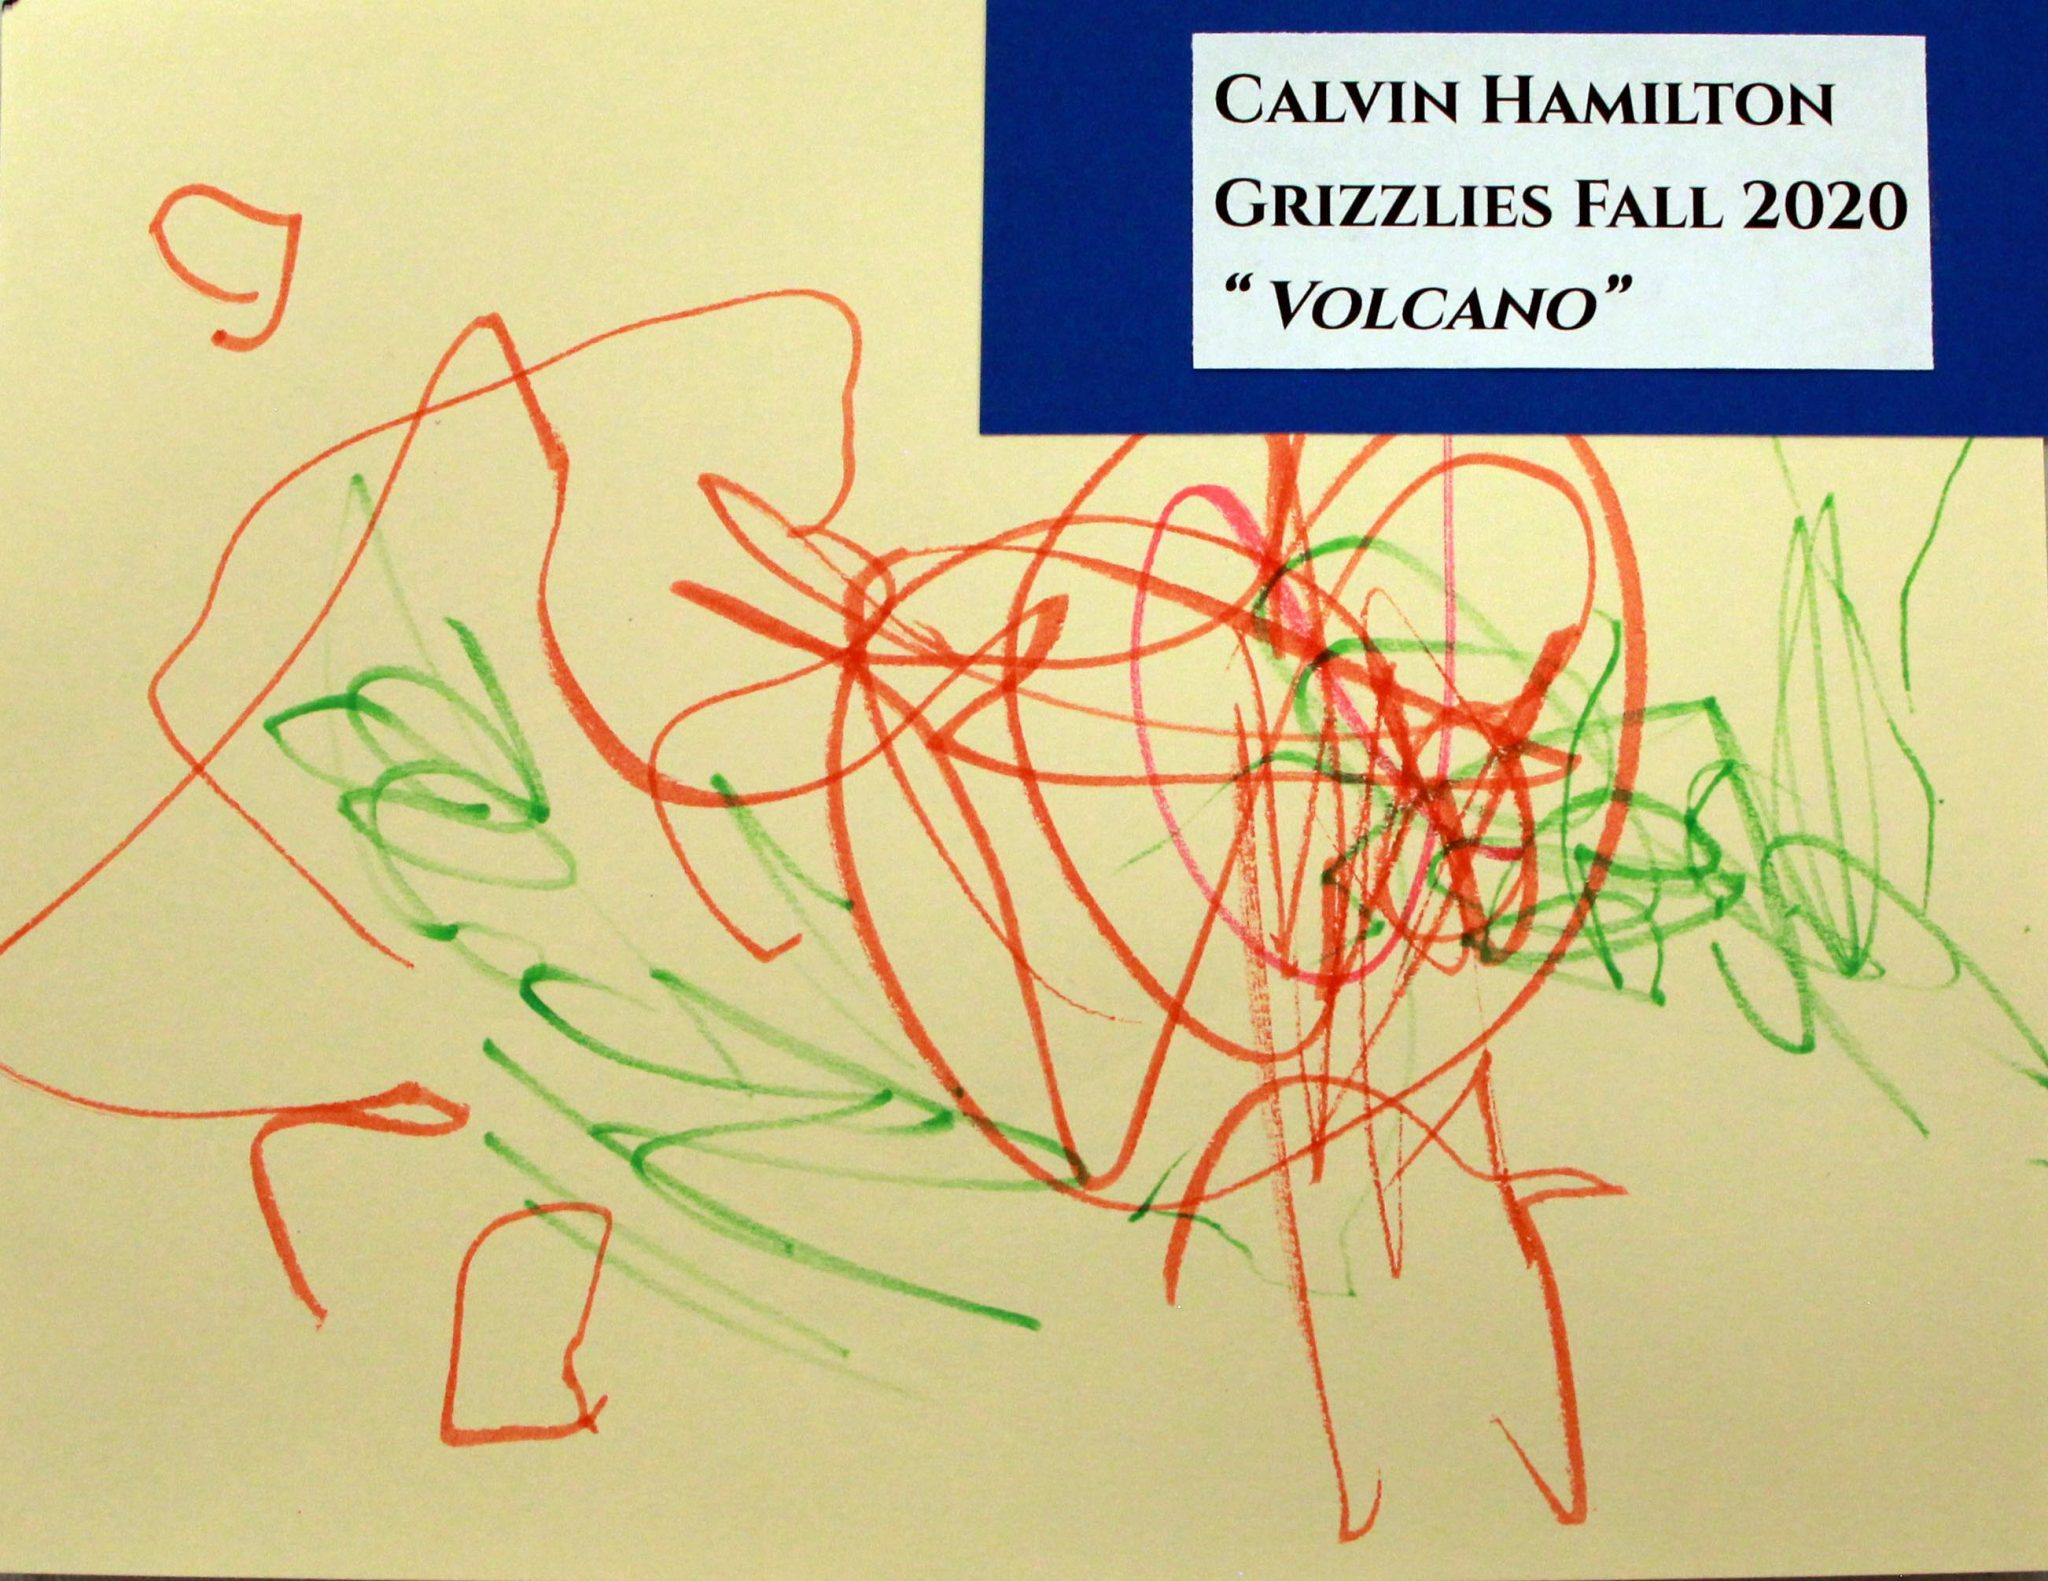 Calvin Hamilton, of Grizzlies group, drawing, Fall 2020